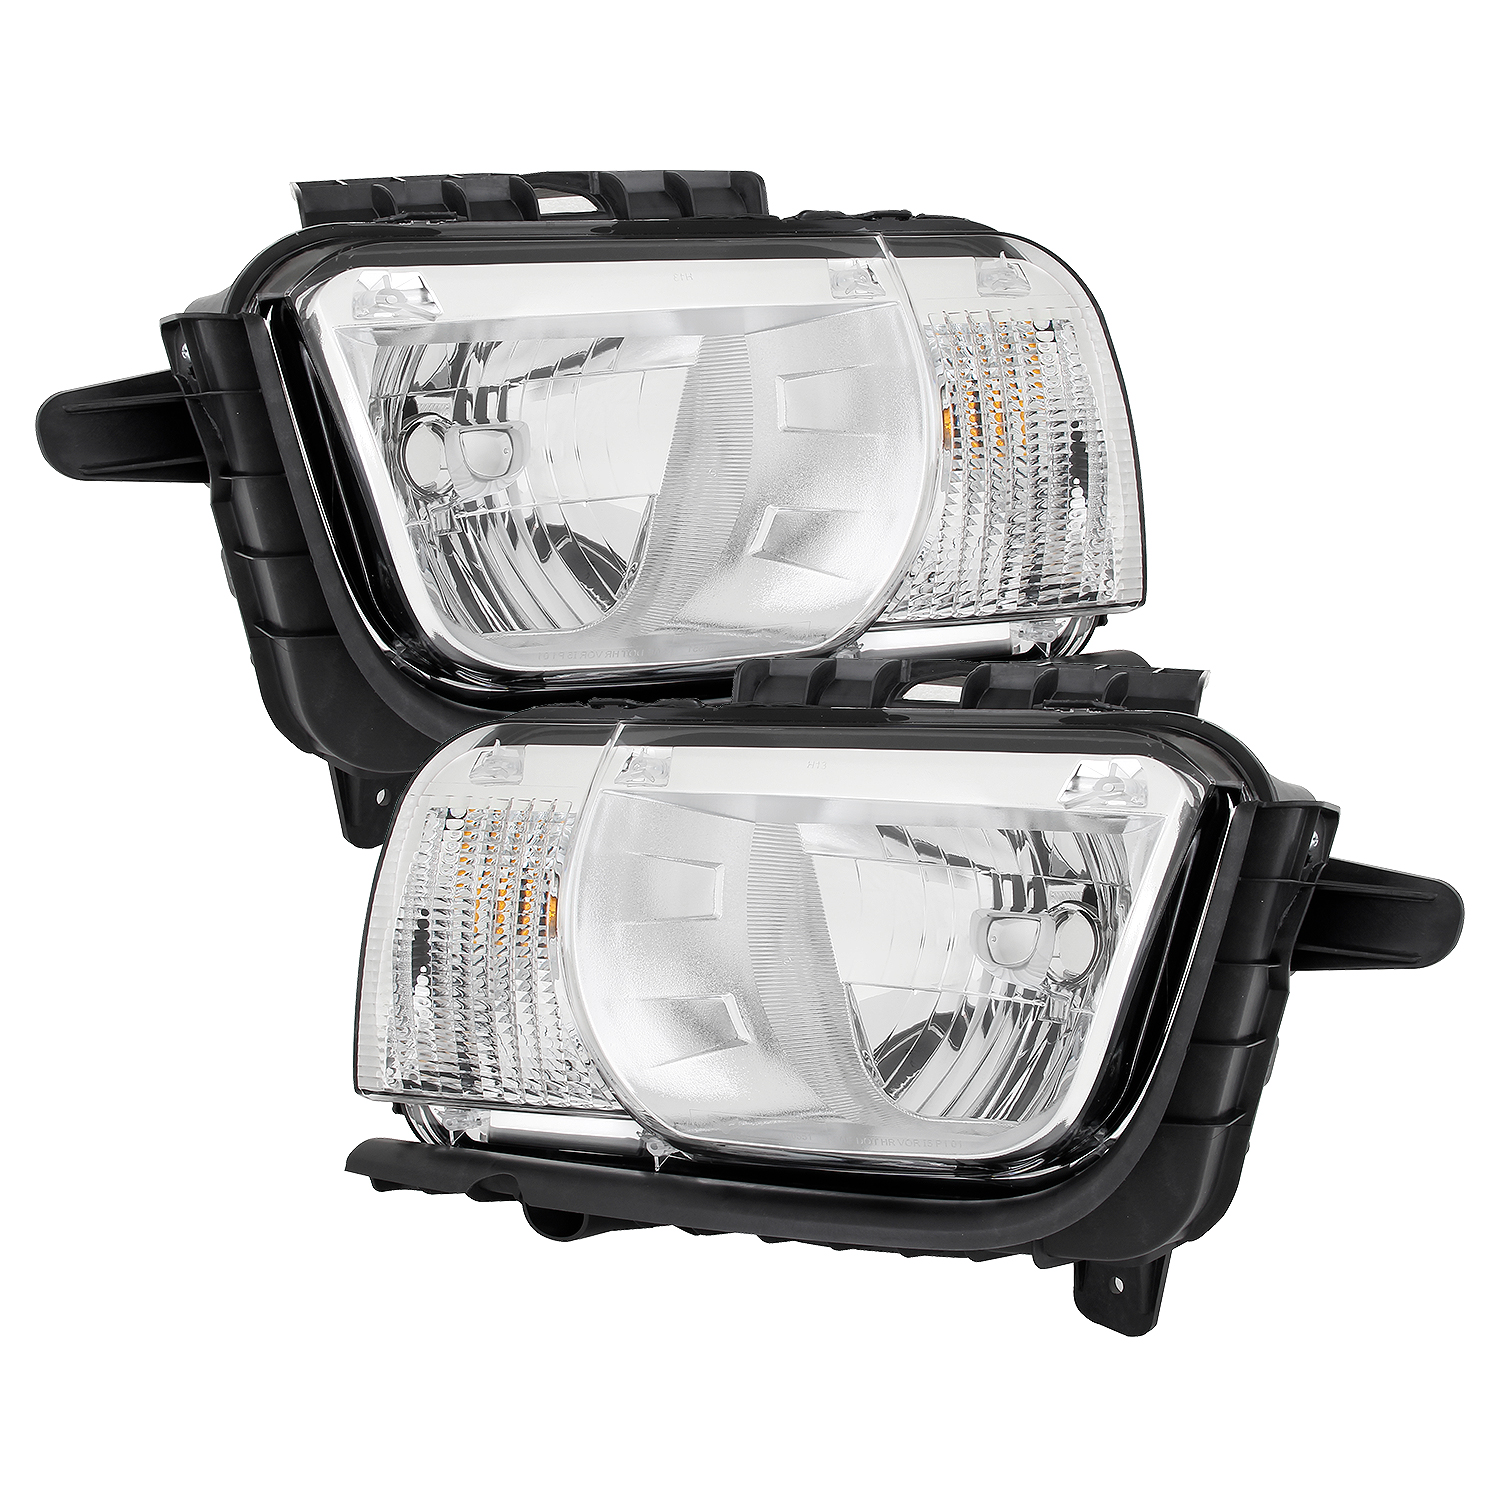 Fits 2010 2011 2012 2013 Chevy Camaro LH + RH Side Headlights Front Lamps Pair